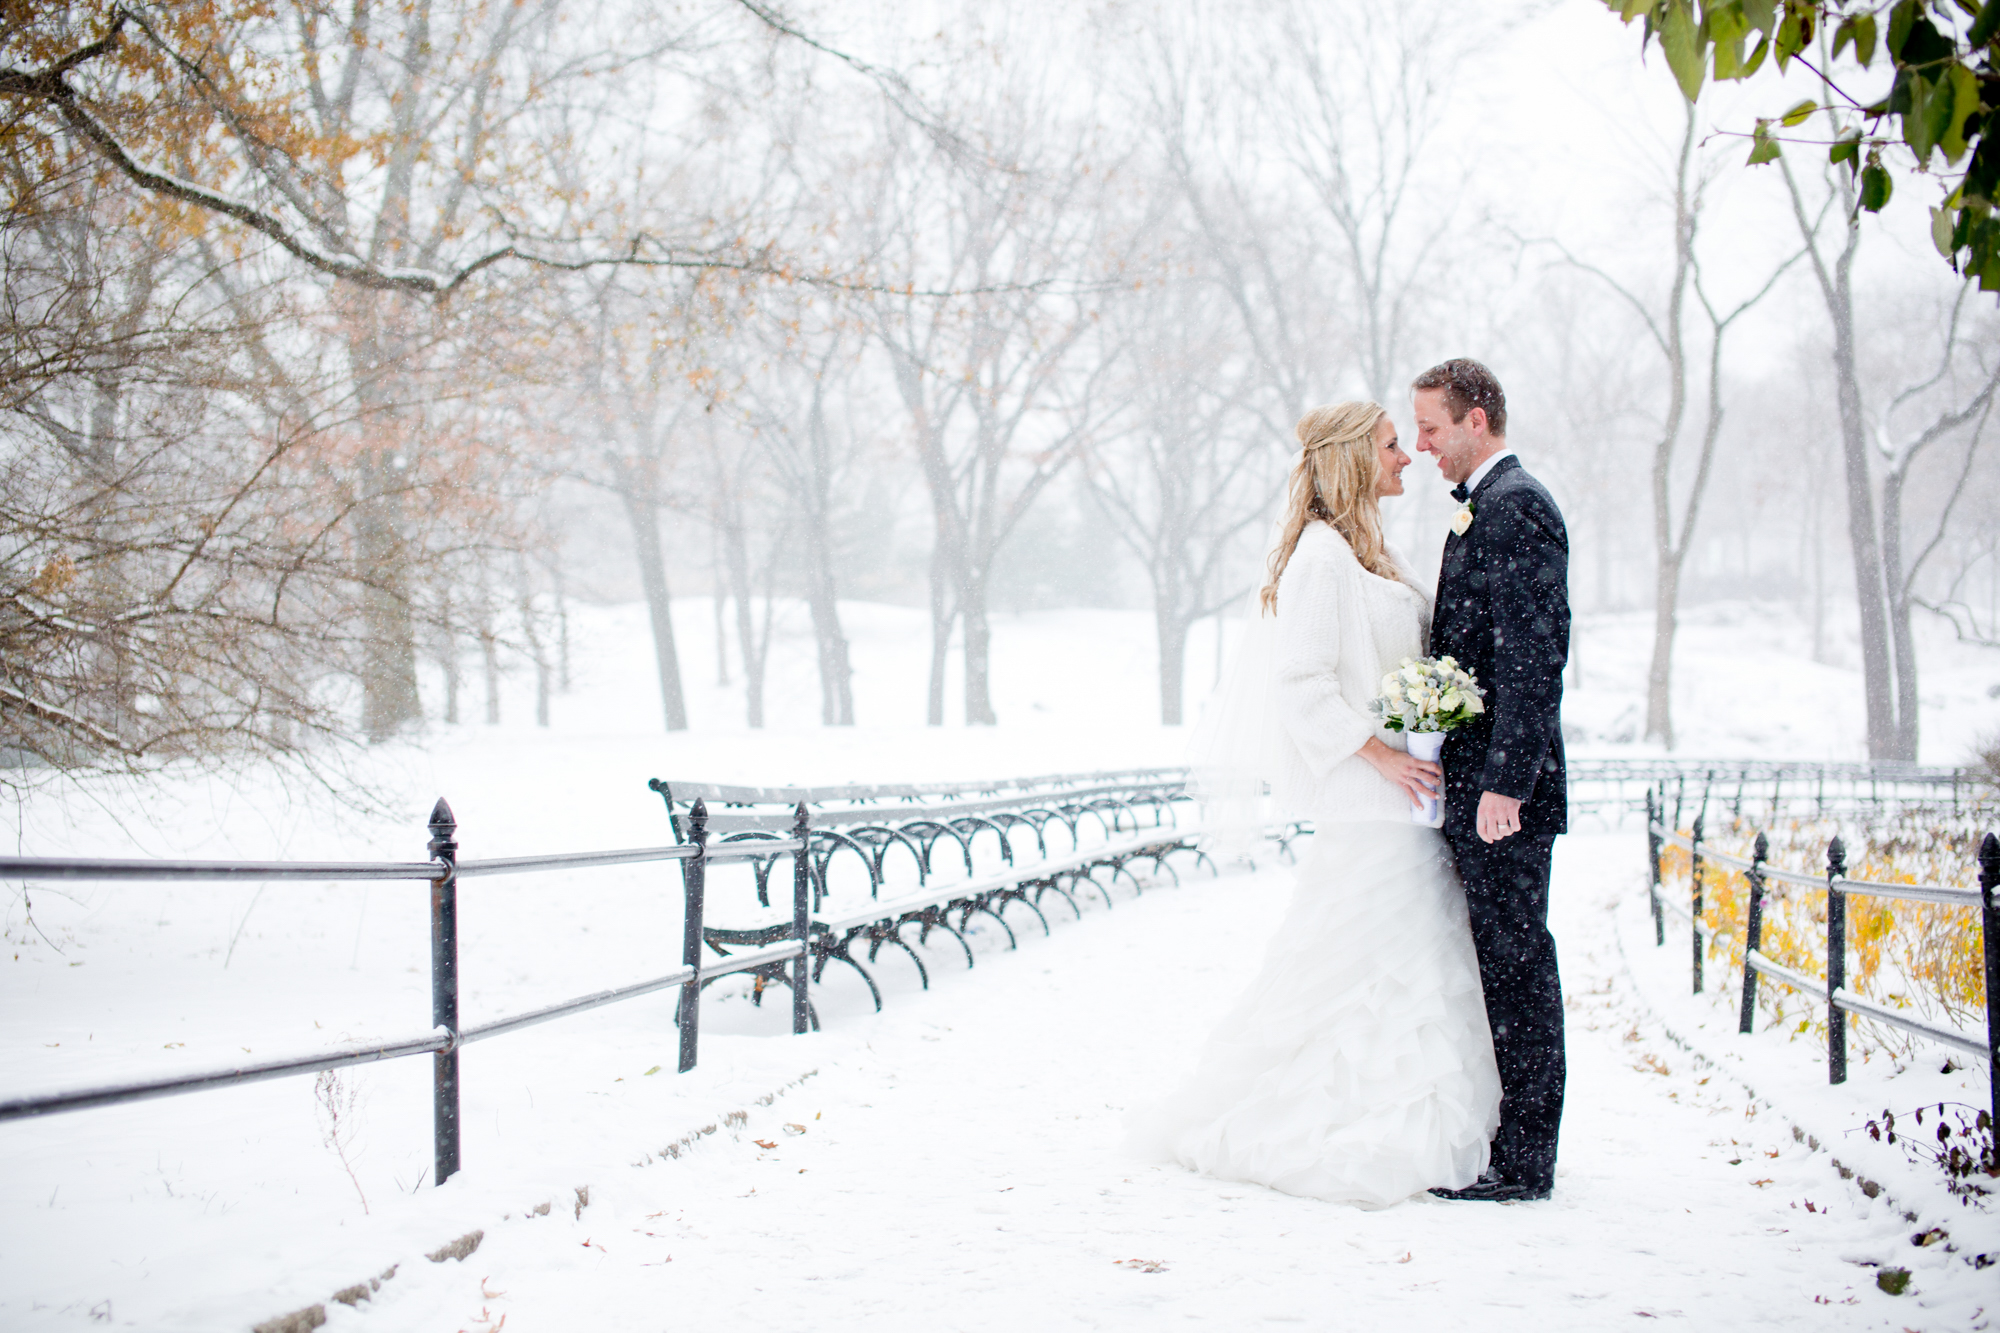 068_CarlyGaebe_SteadfastStudio_WeddingPhotography_NewYorkCity_CentralPark_Winter_Romantic_Snowing_Bride_Groom_Bouquet_Ring.jpg